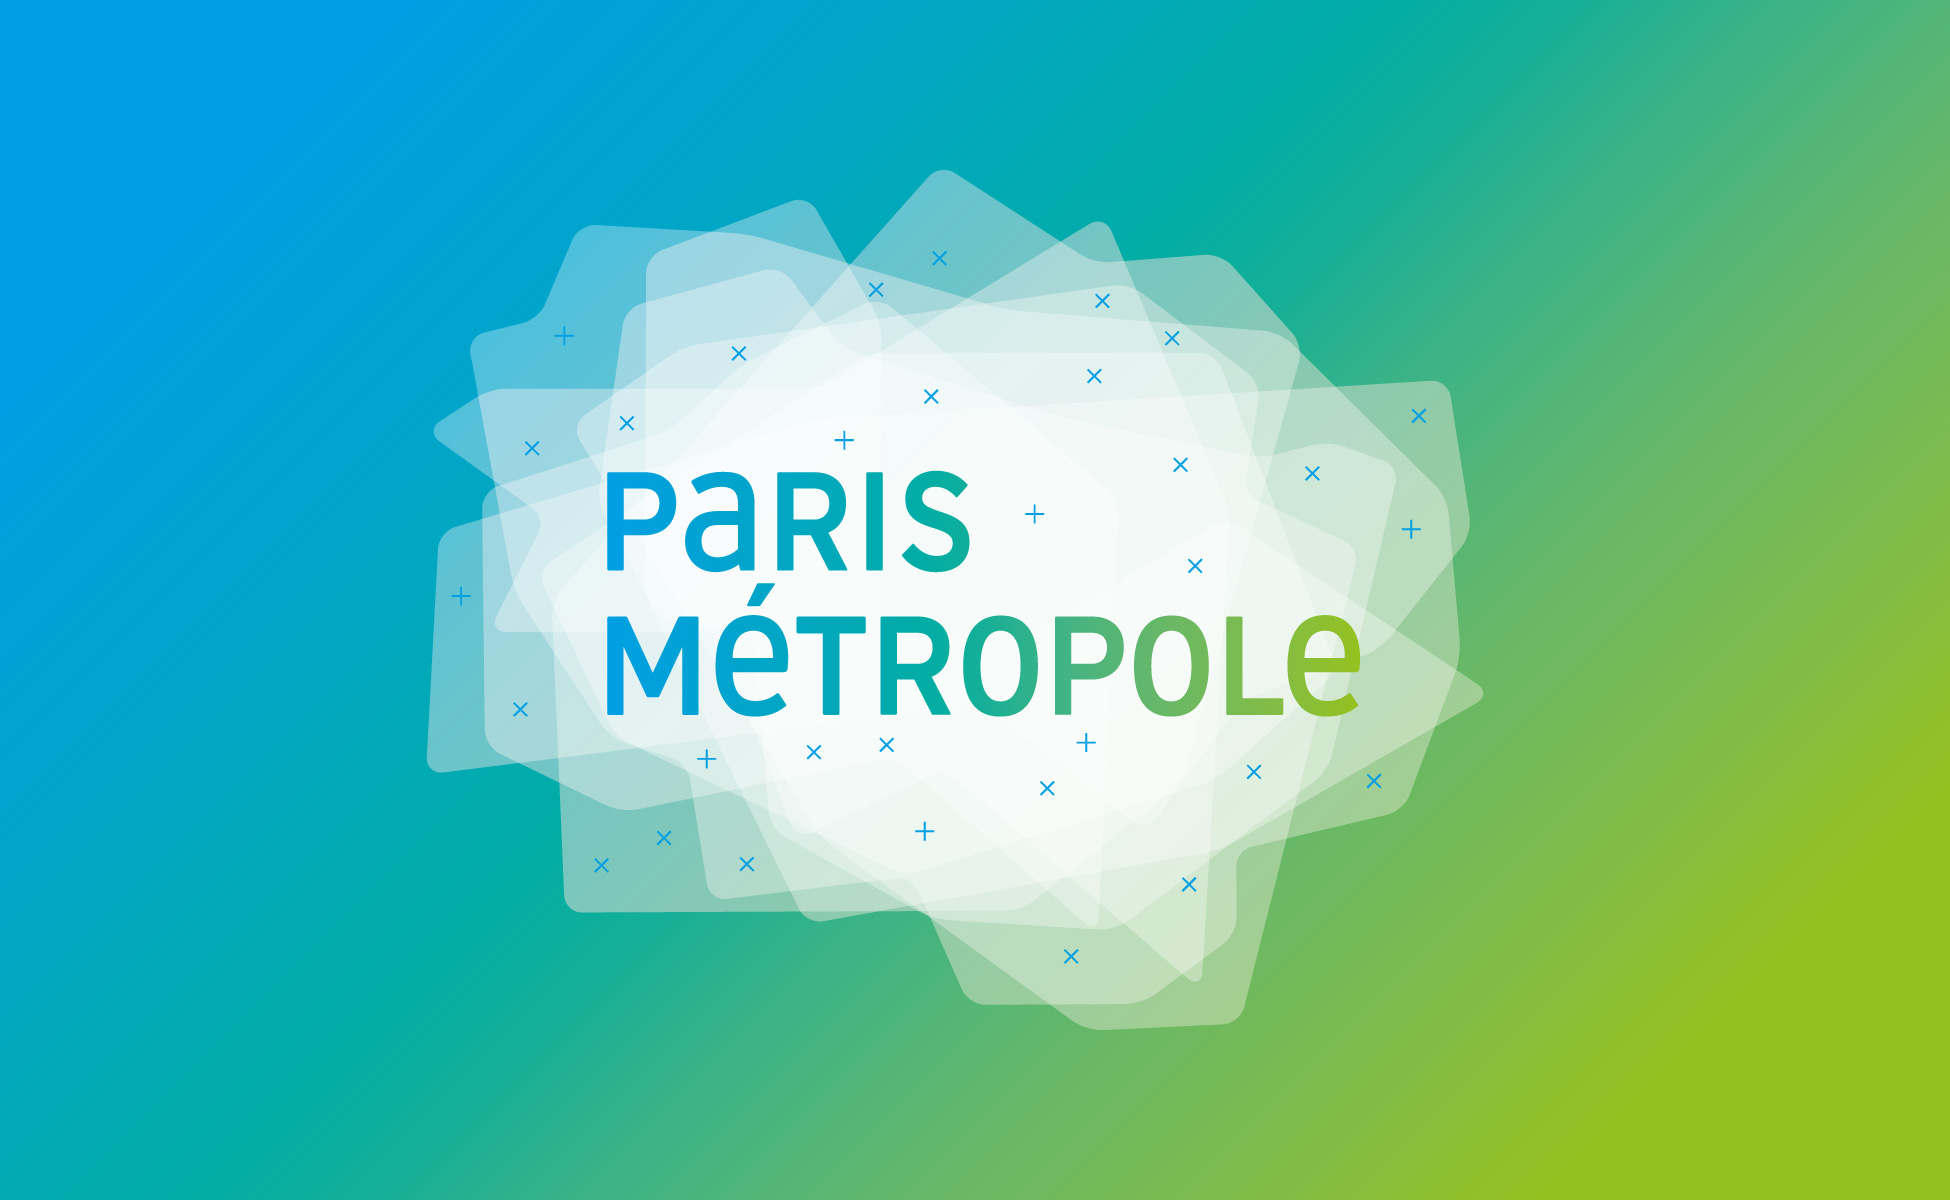 logo-design-paris-metropole-gradient-blue-green